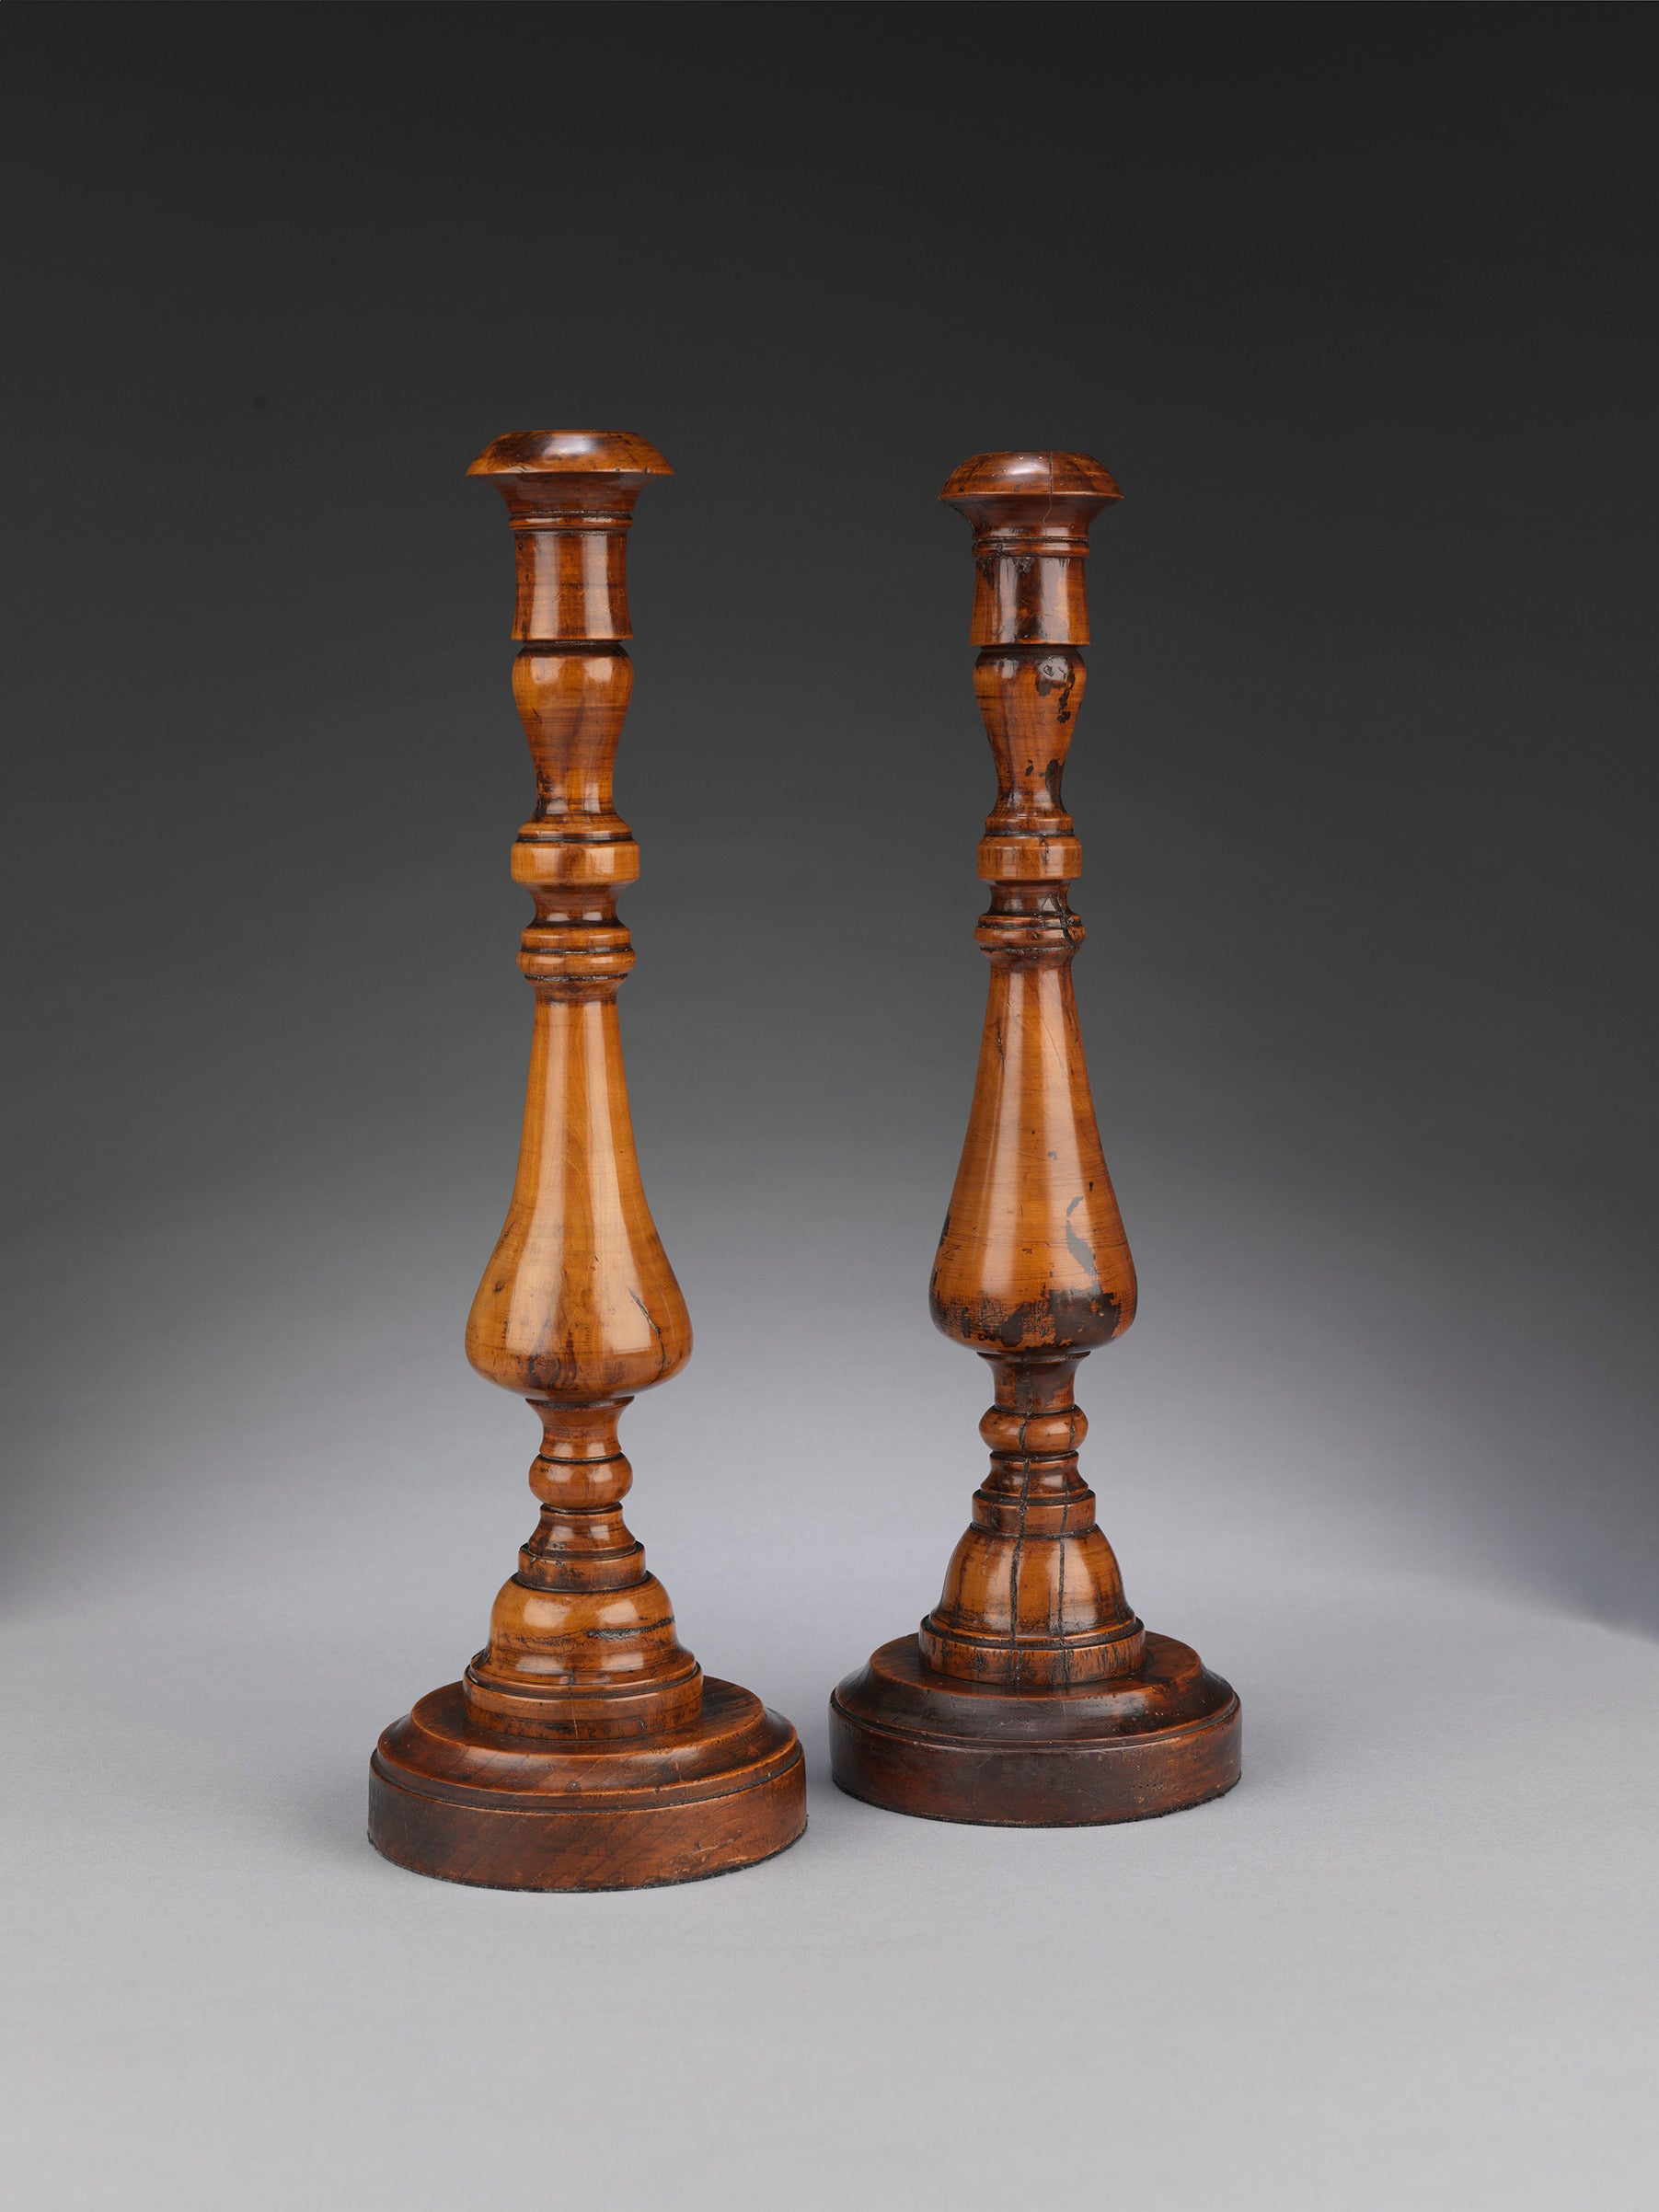 Fine Pair of Early Georgian Table Candlesticks